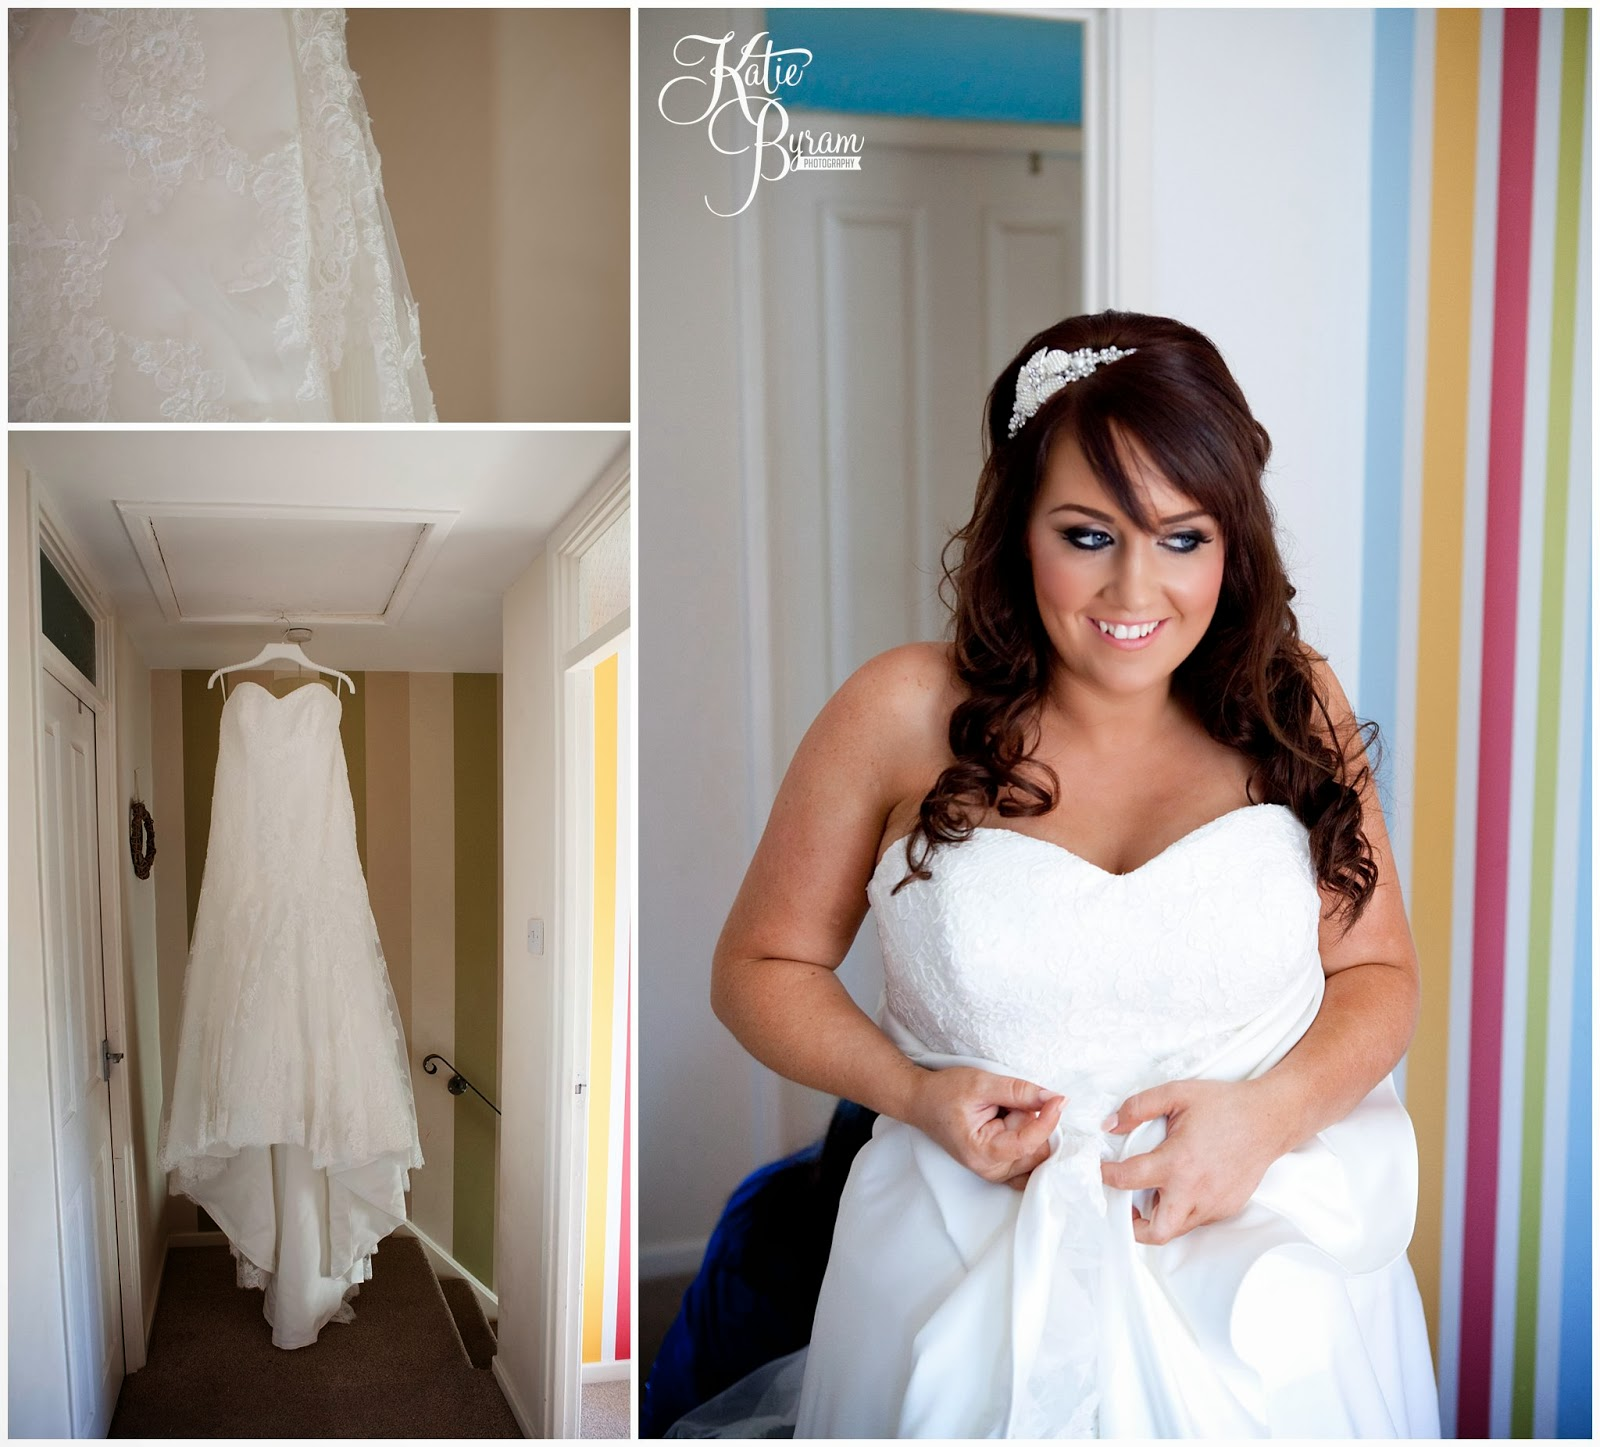 St helens low fell ramside hall wedding durham melissa graham ramside hall wedding durham wedding photography coral themed wedding coral bridesmaid dresses ombrellifo Image collections